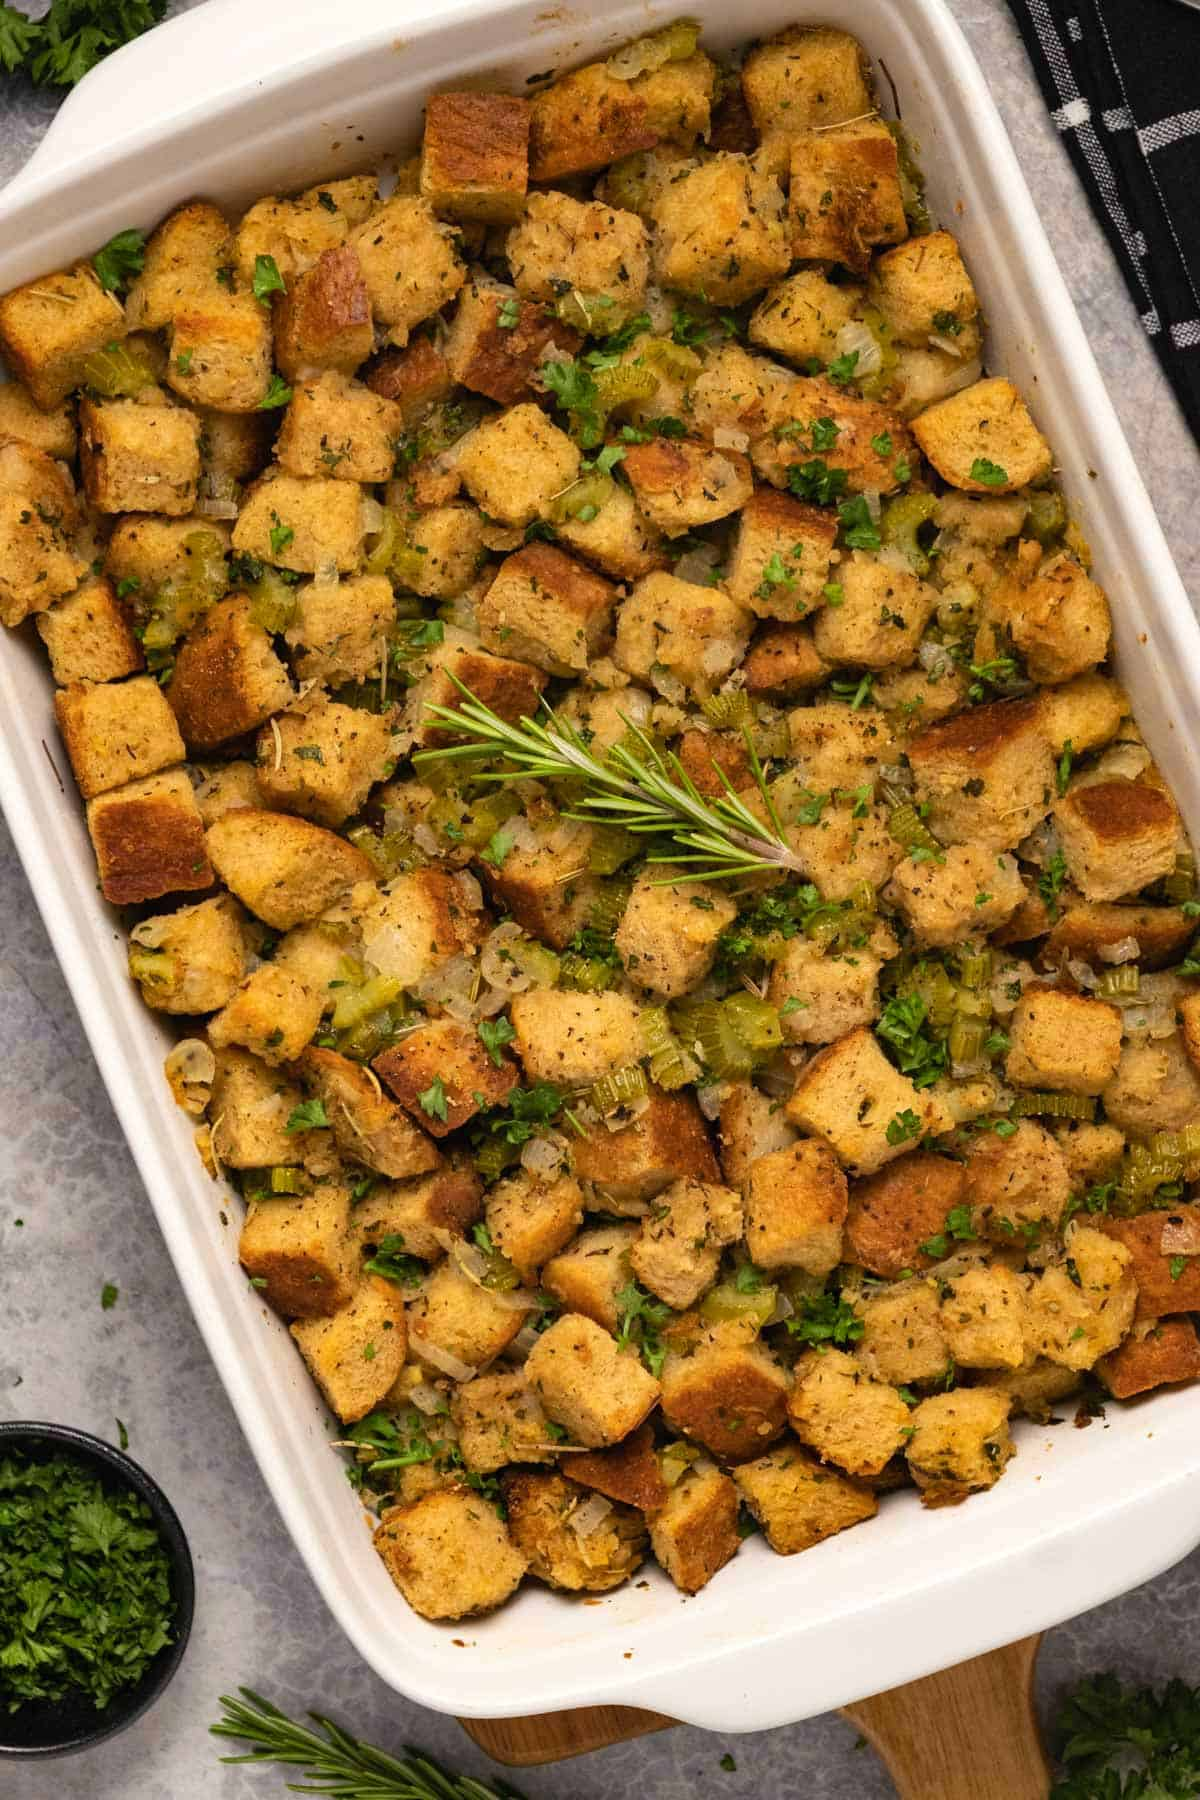 Vegan stuffing with fresh rosemary in a white dish.